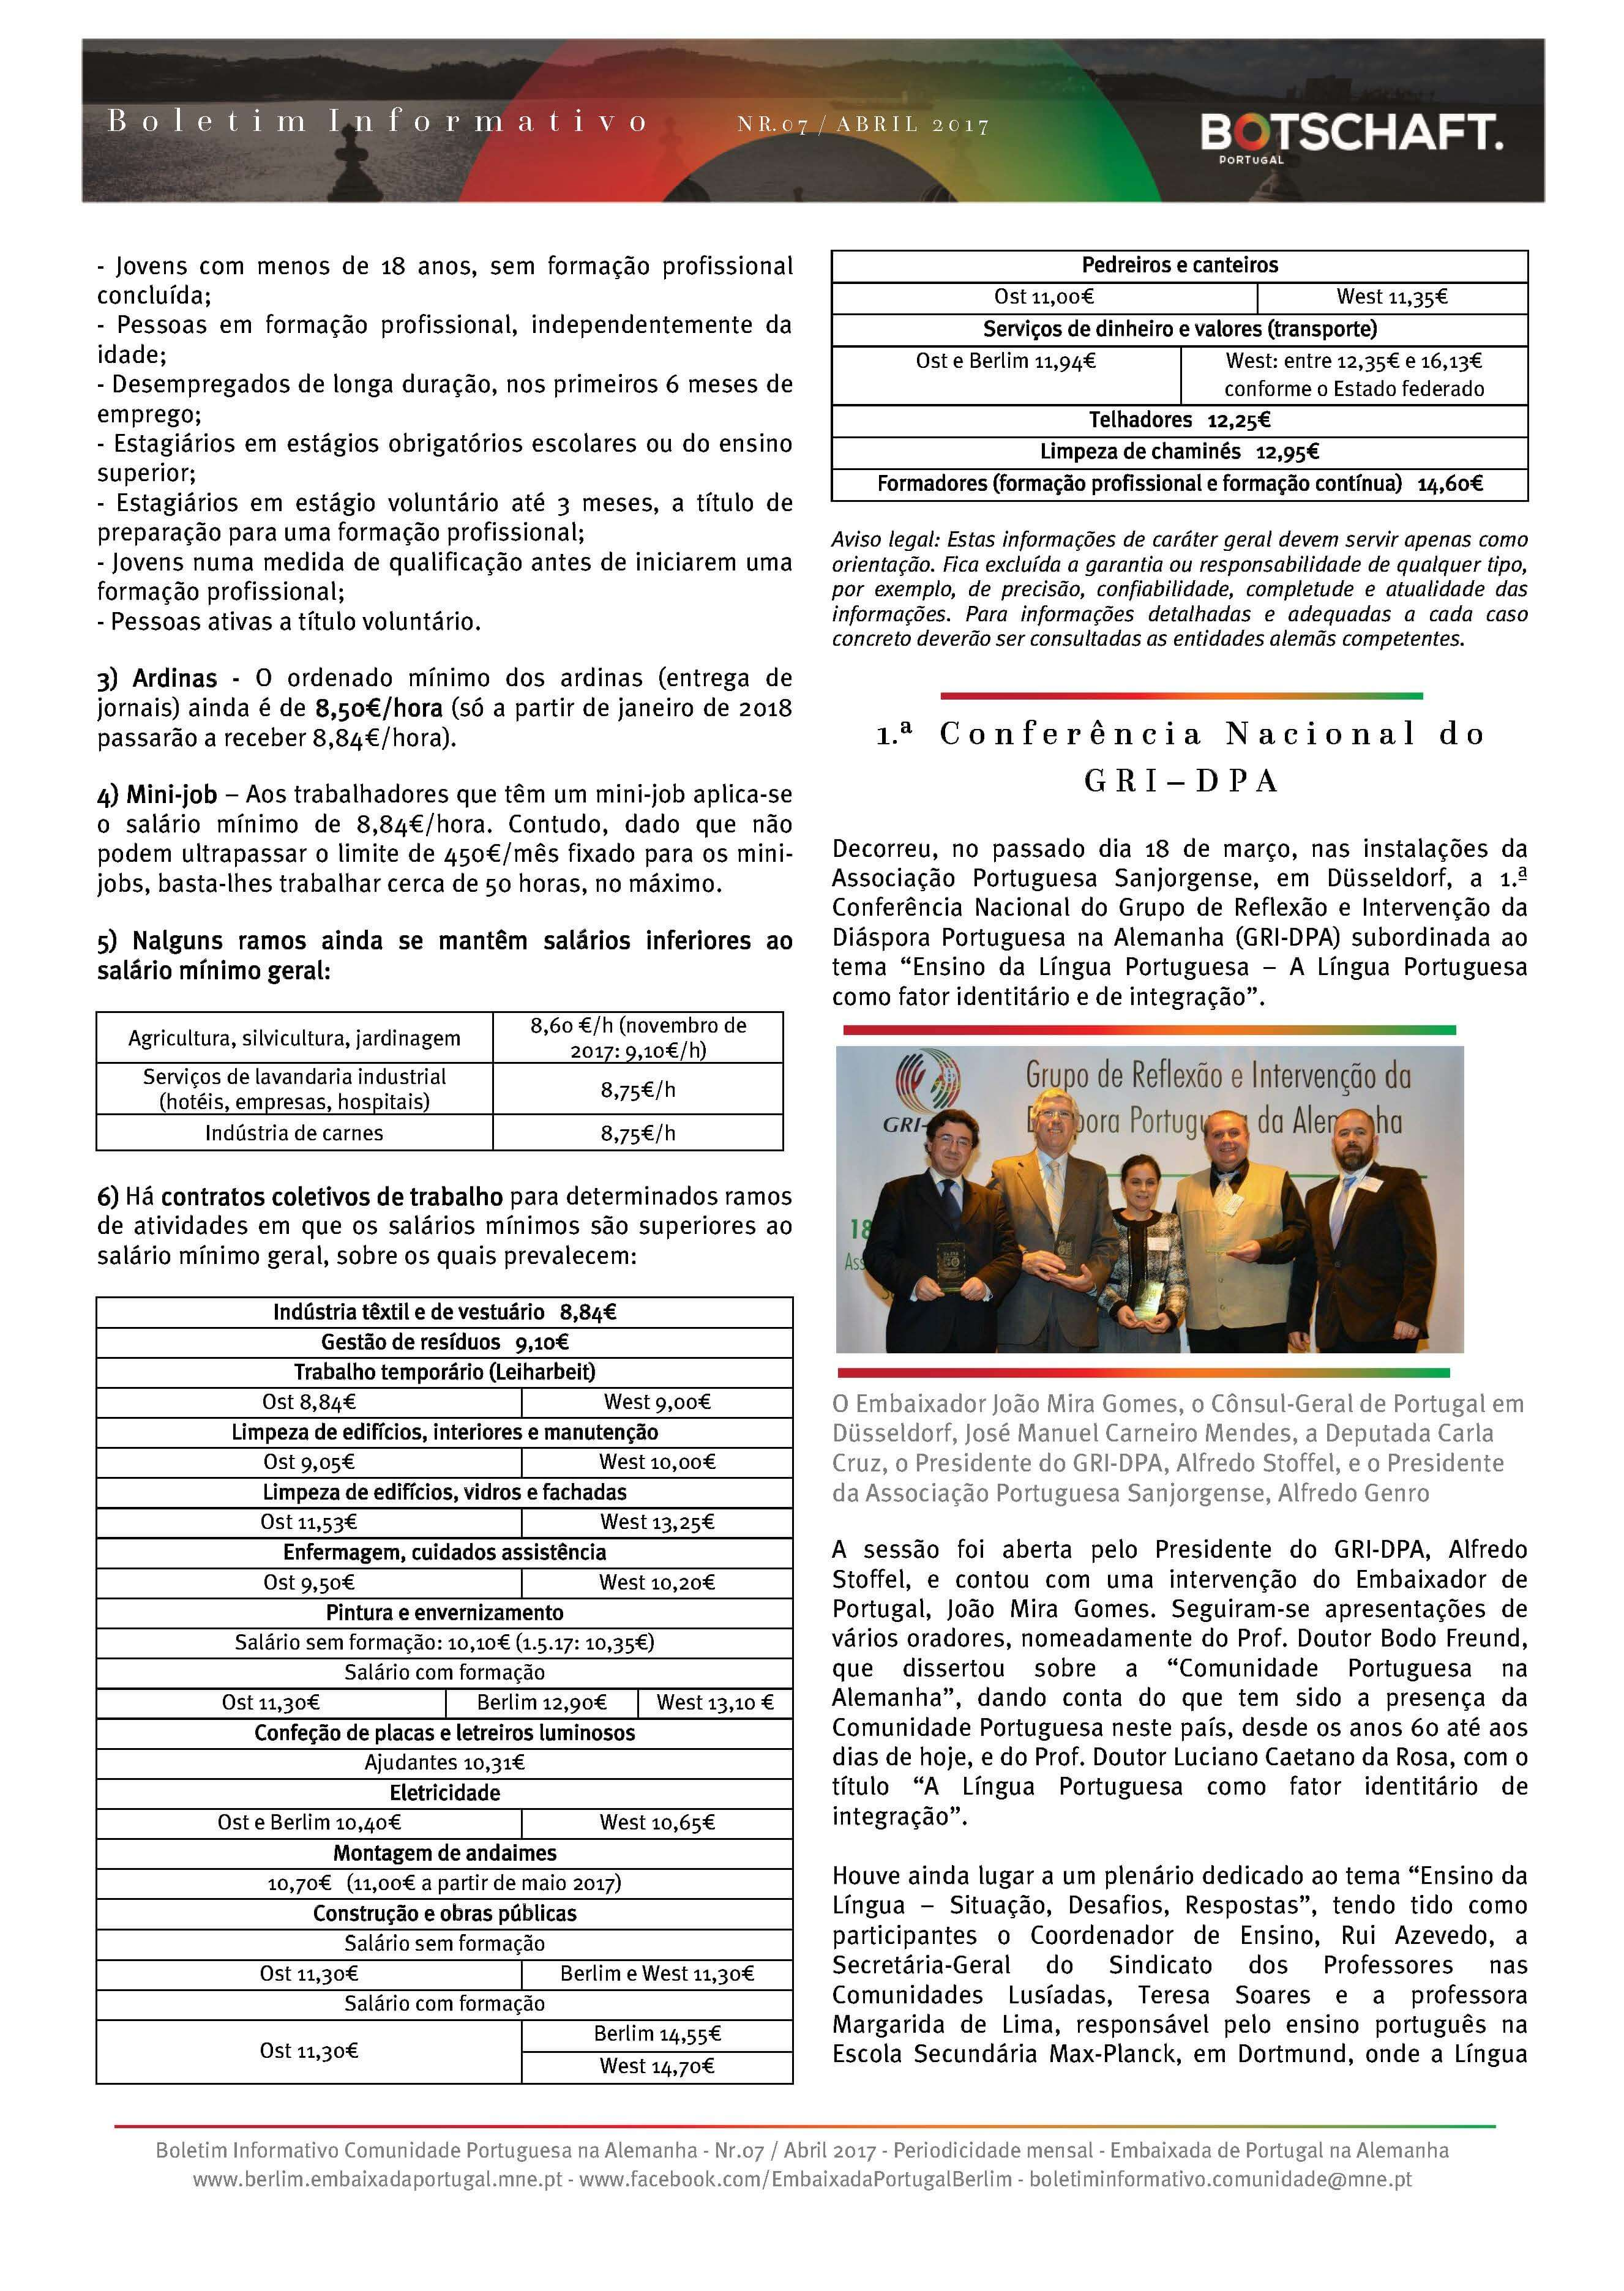 Boletim Informativo Nr. 07 Abril 2017 Page 3 reduced